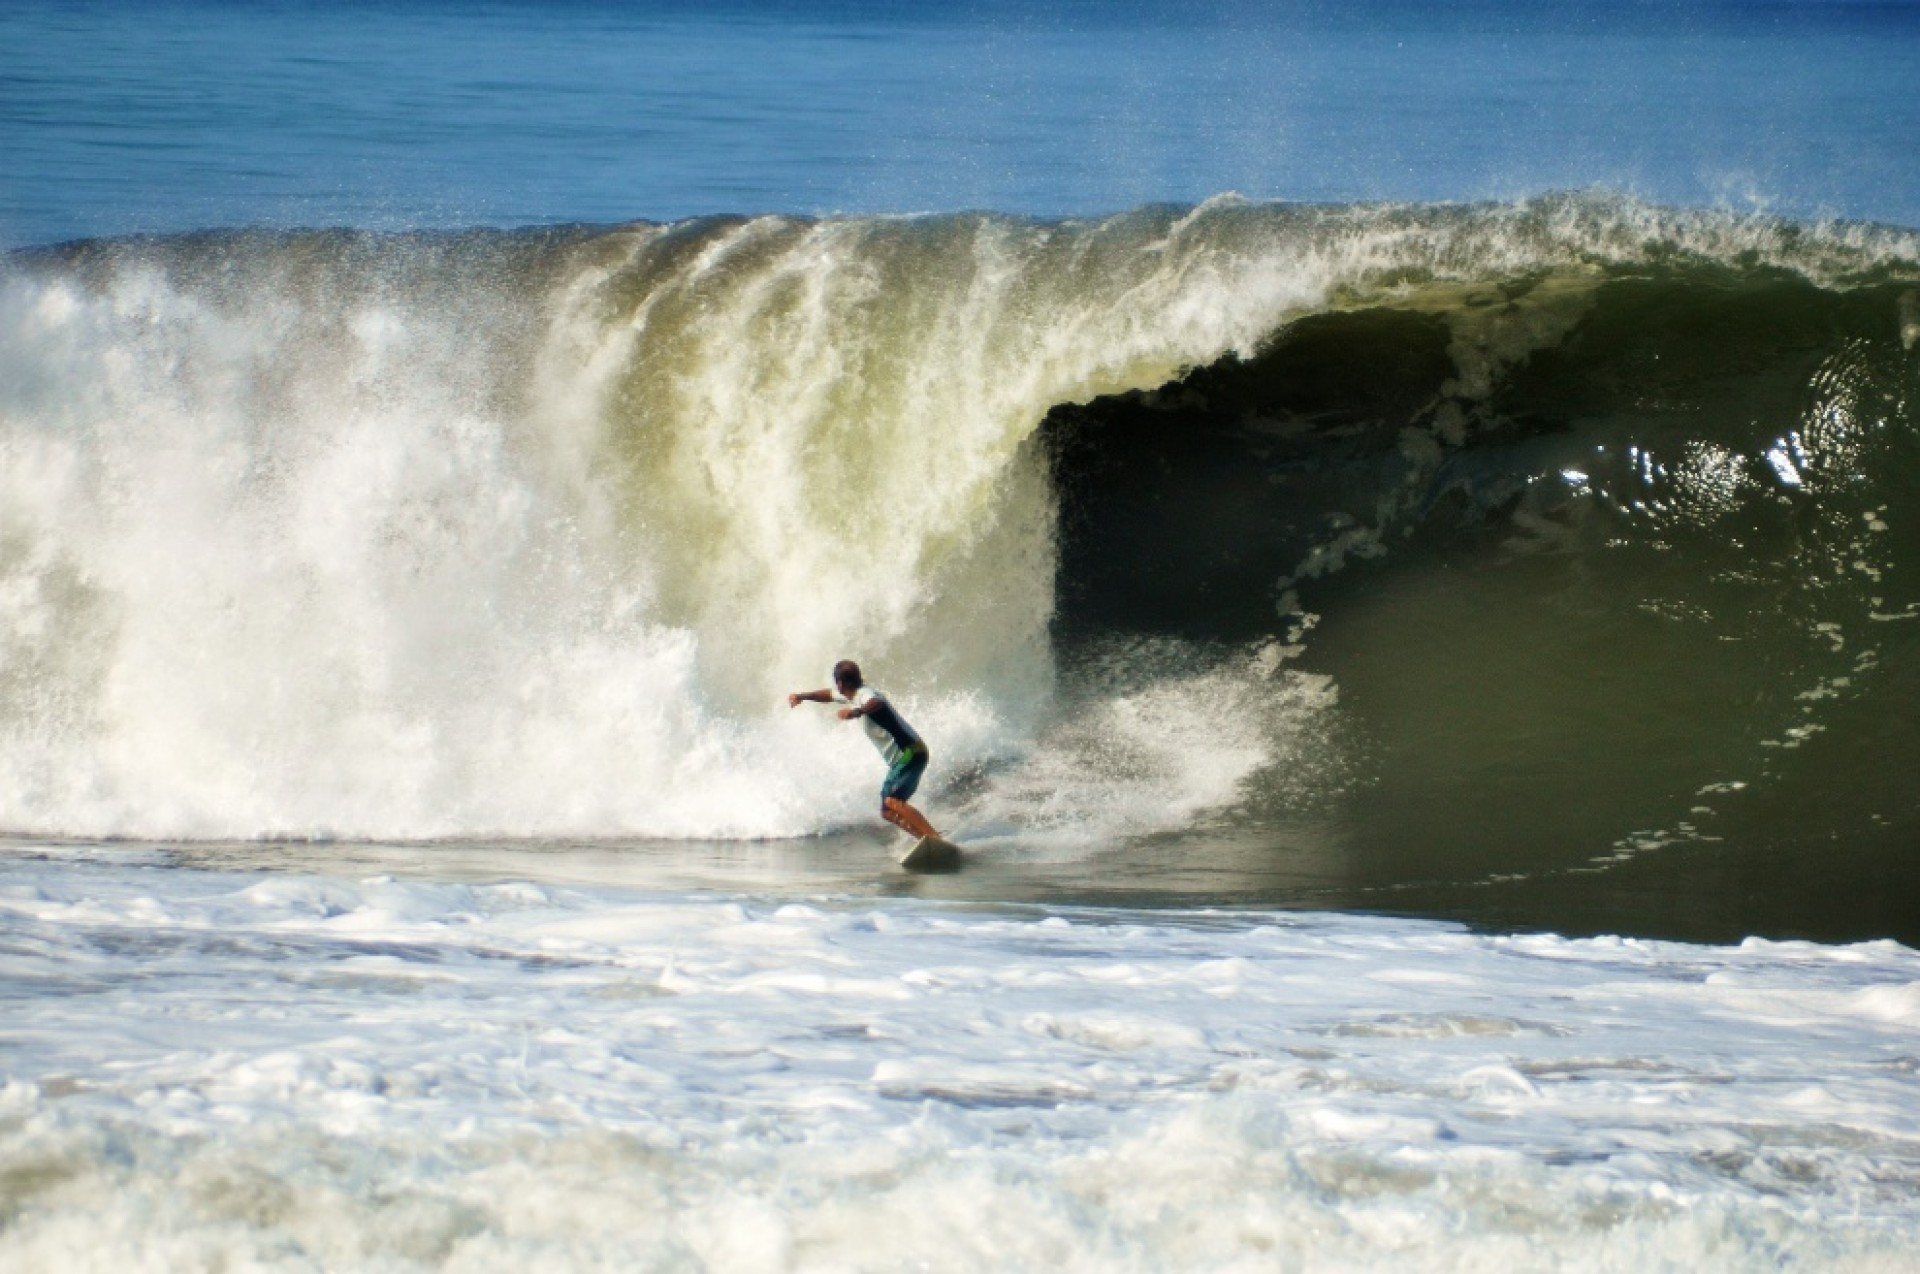 gaston lagrange's photo of Playa Hermosa